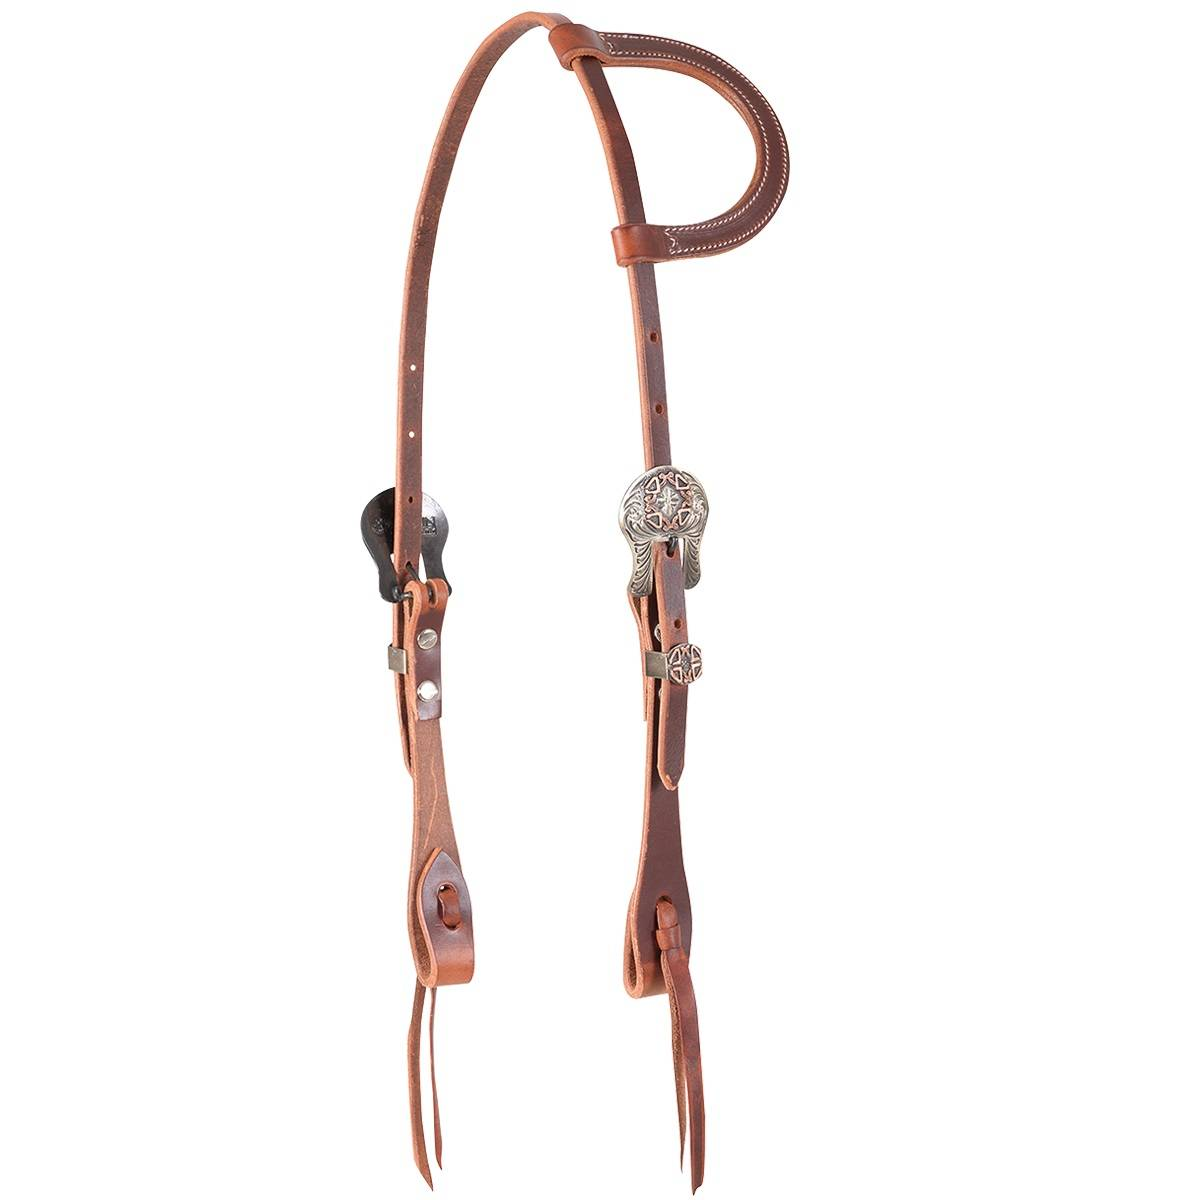 Martin Slide Ear Cowboy Diamond Buckle Headstall- Brown